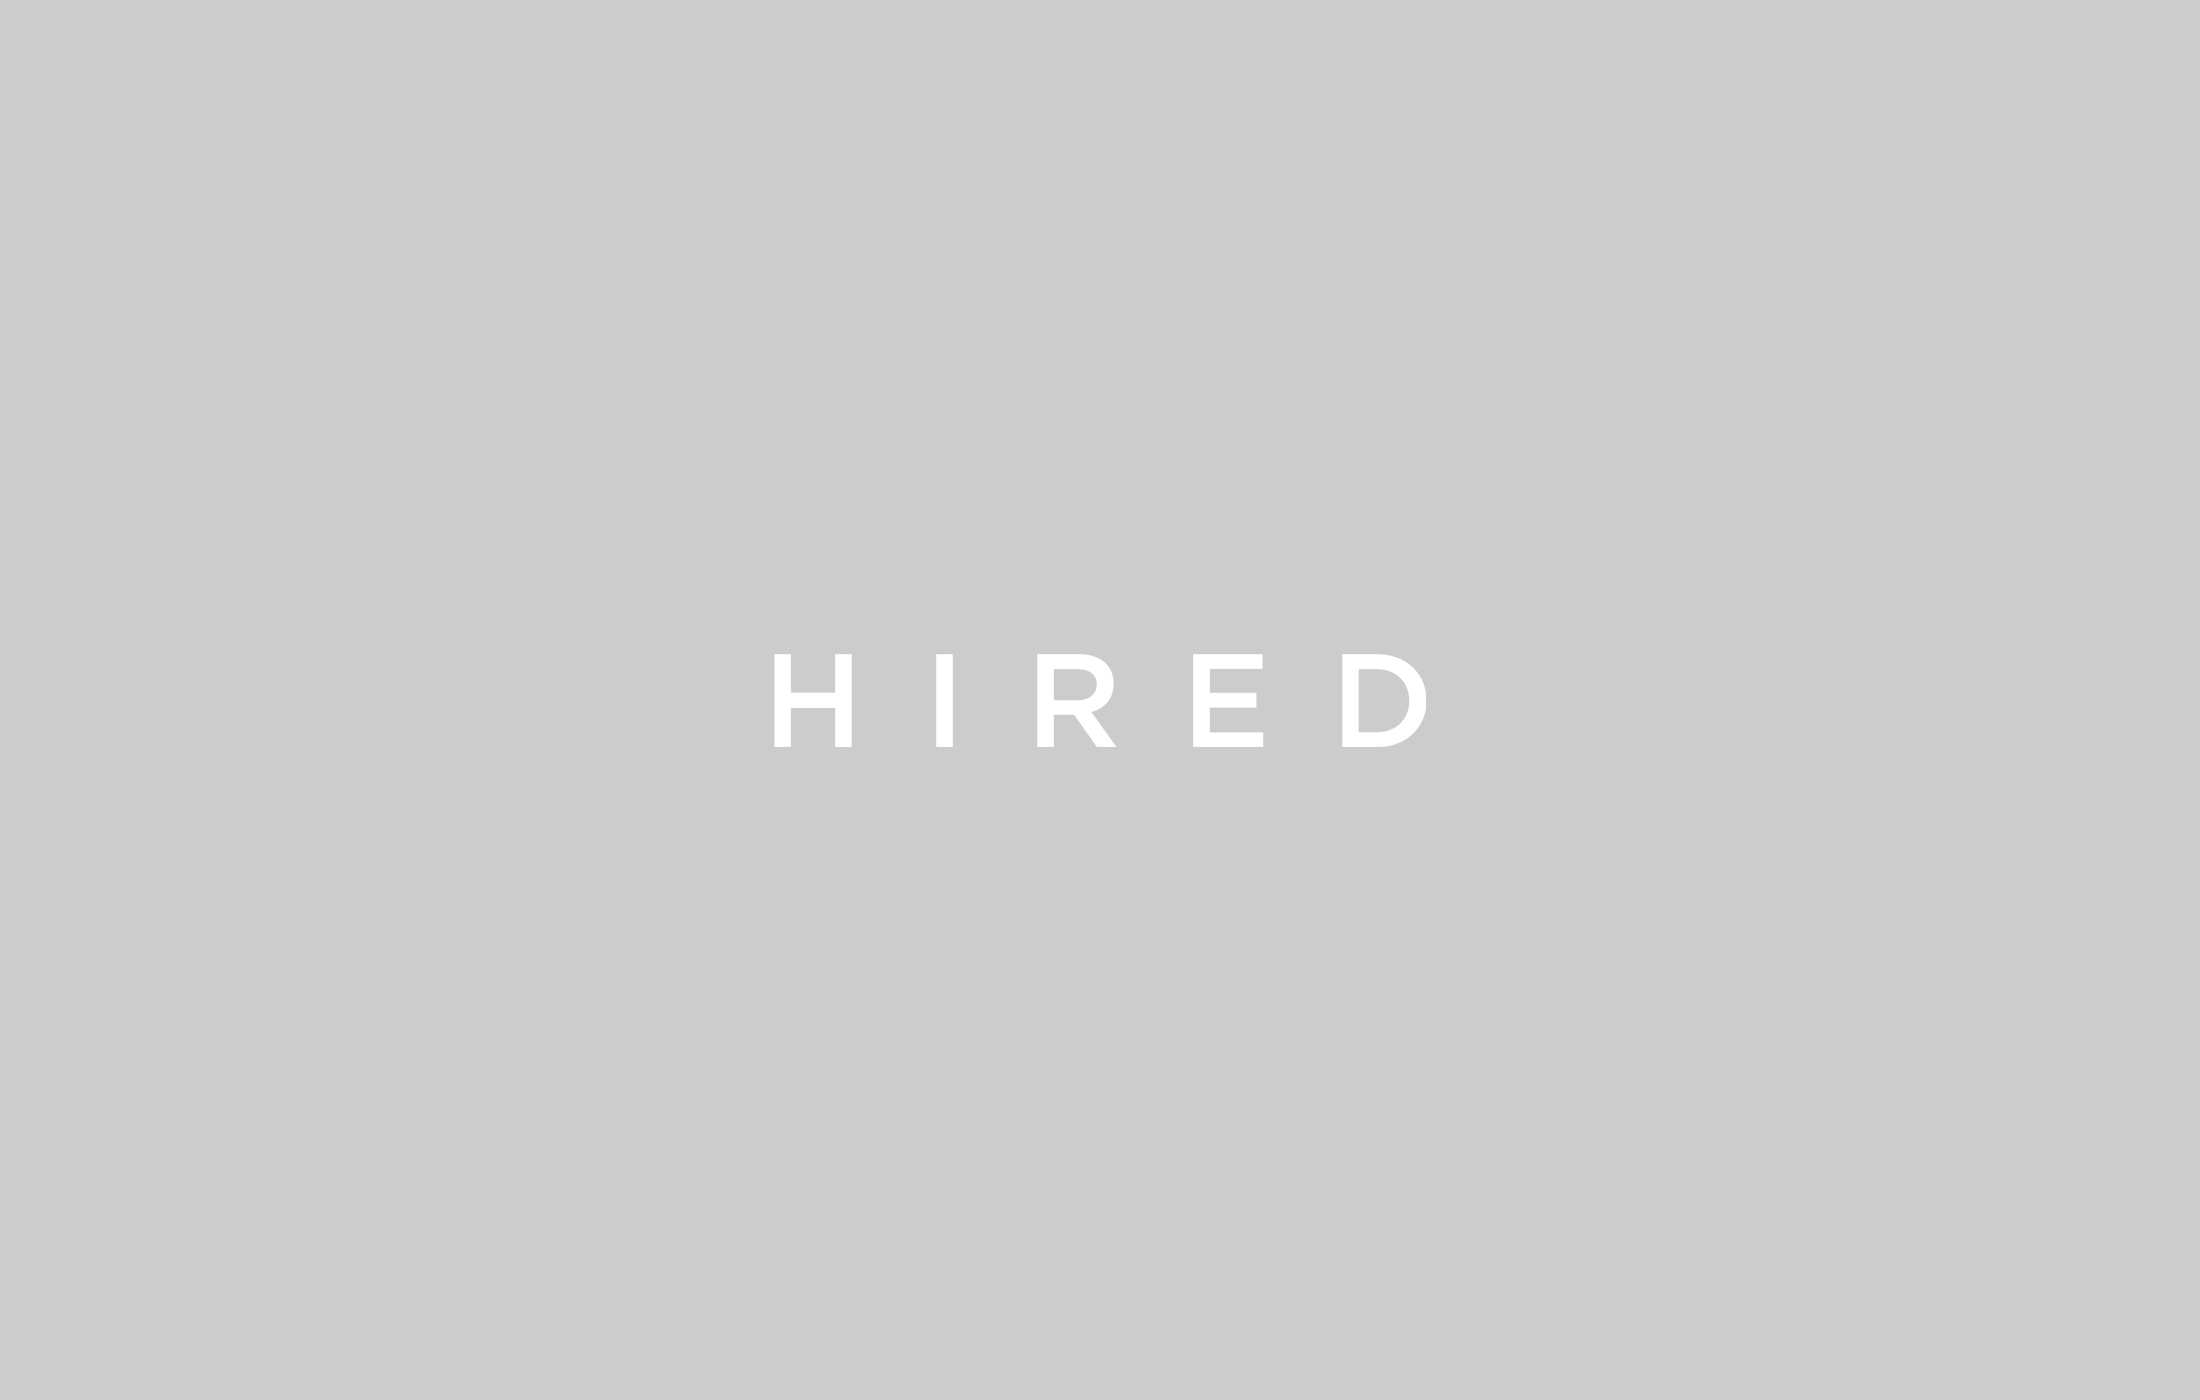 hired-launches-ios-app-for-employers